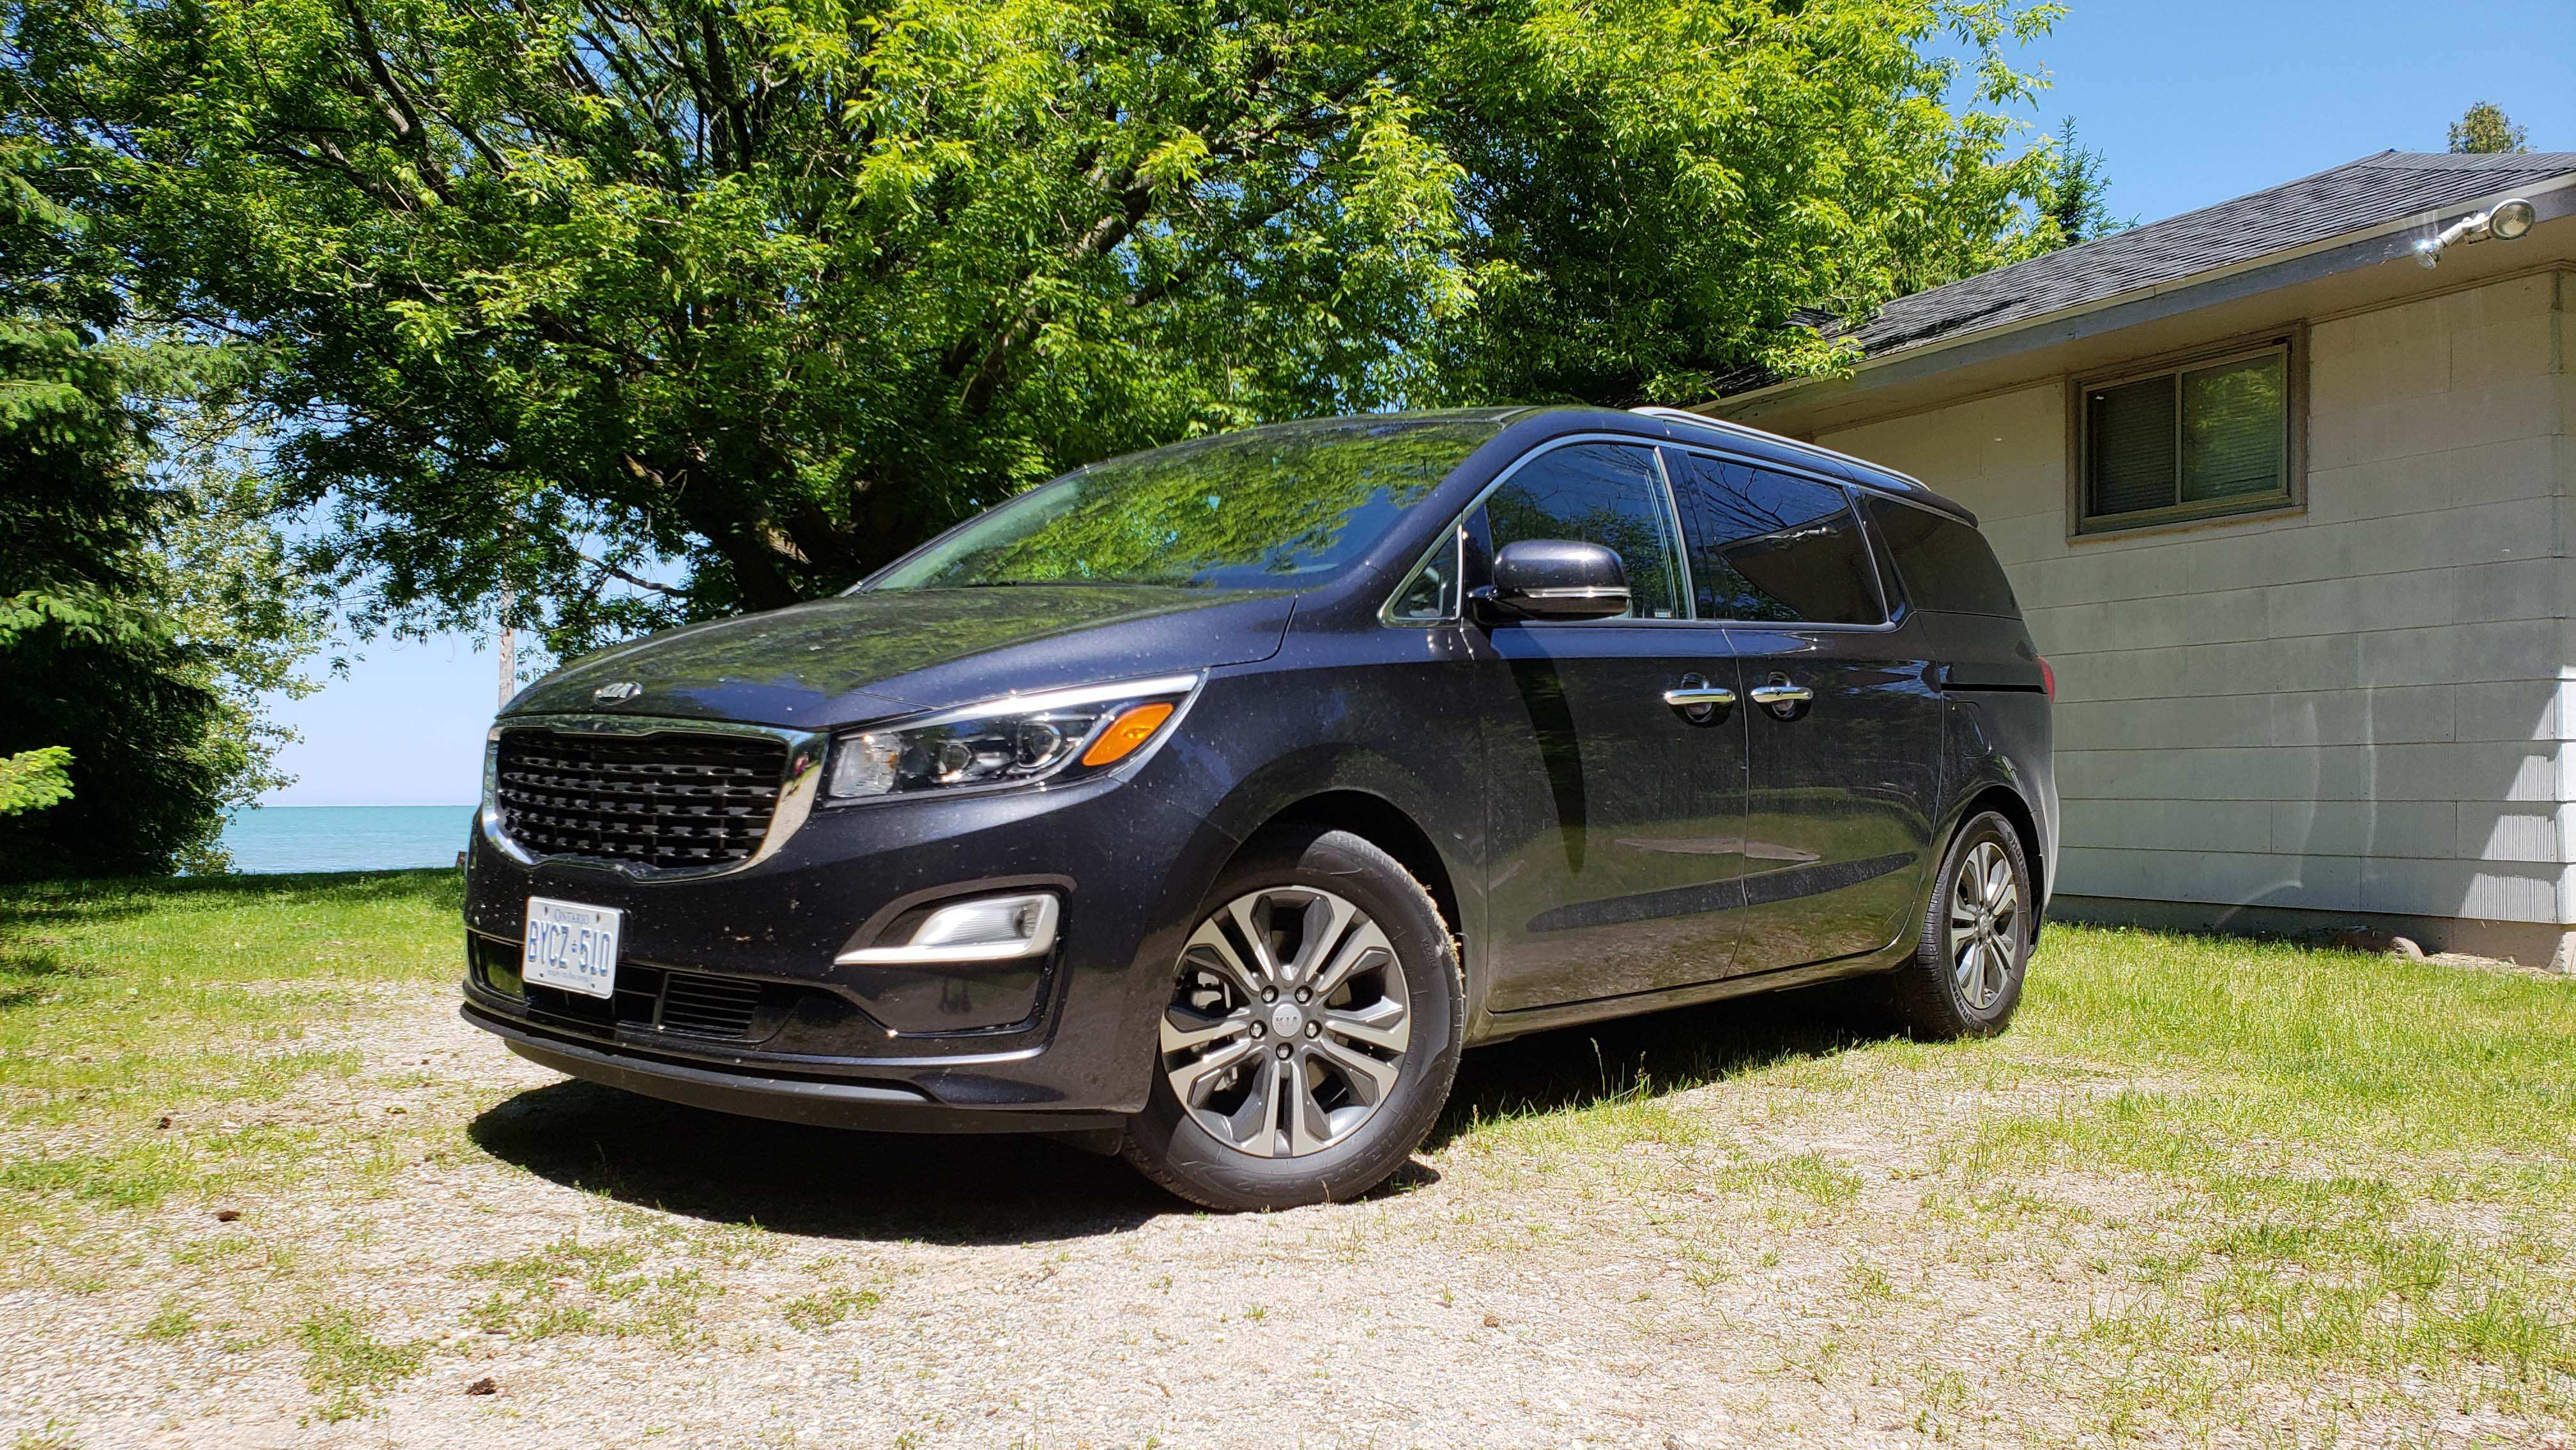 68 Gallery of 2020 Kia Sedona Release Date Release for 2020 Kia Sedona Release Date